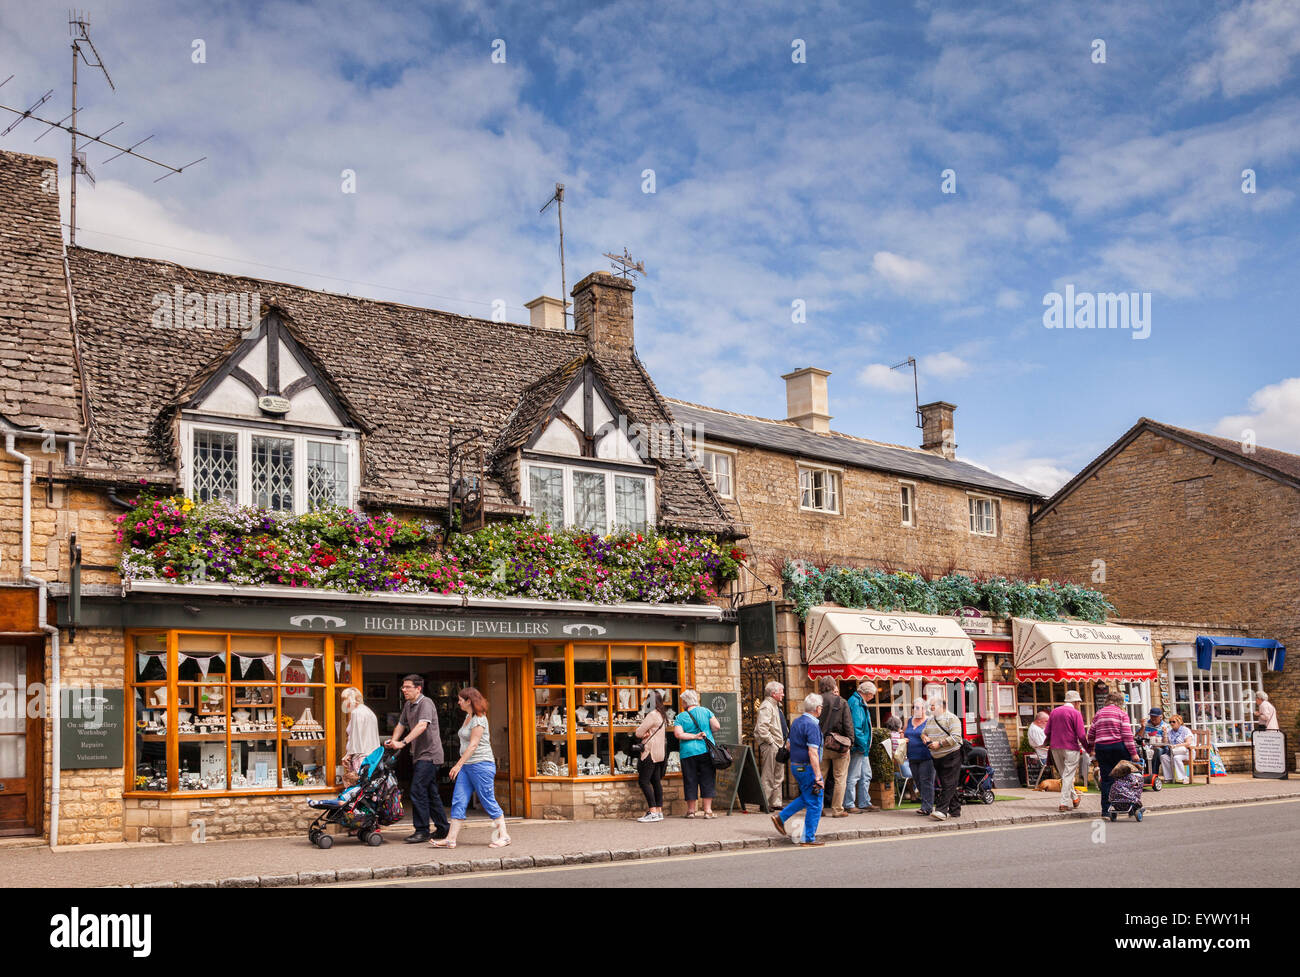 Tourists in the High Street at Bourton-on-the-Water, Gloucestershire, England. - Stock Image